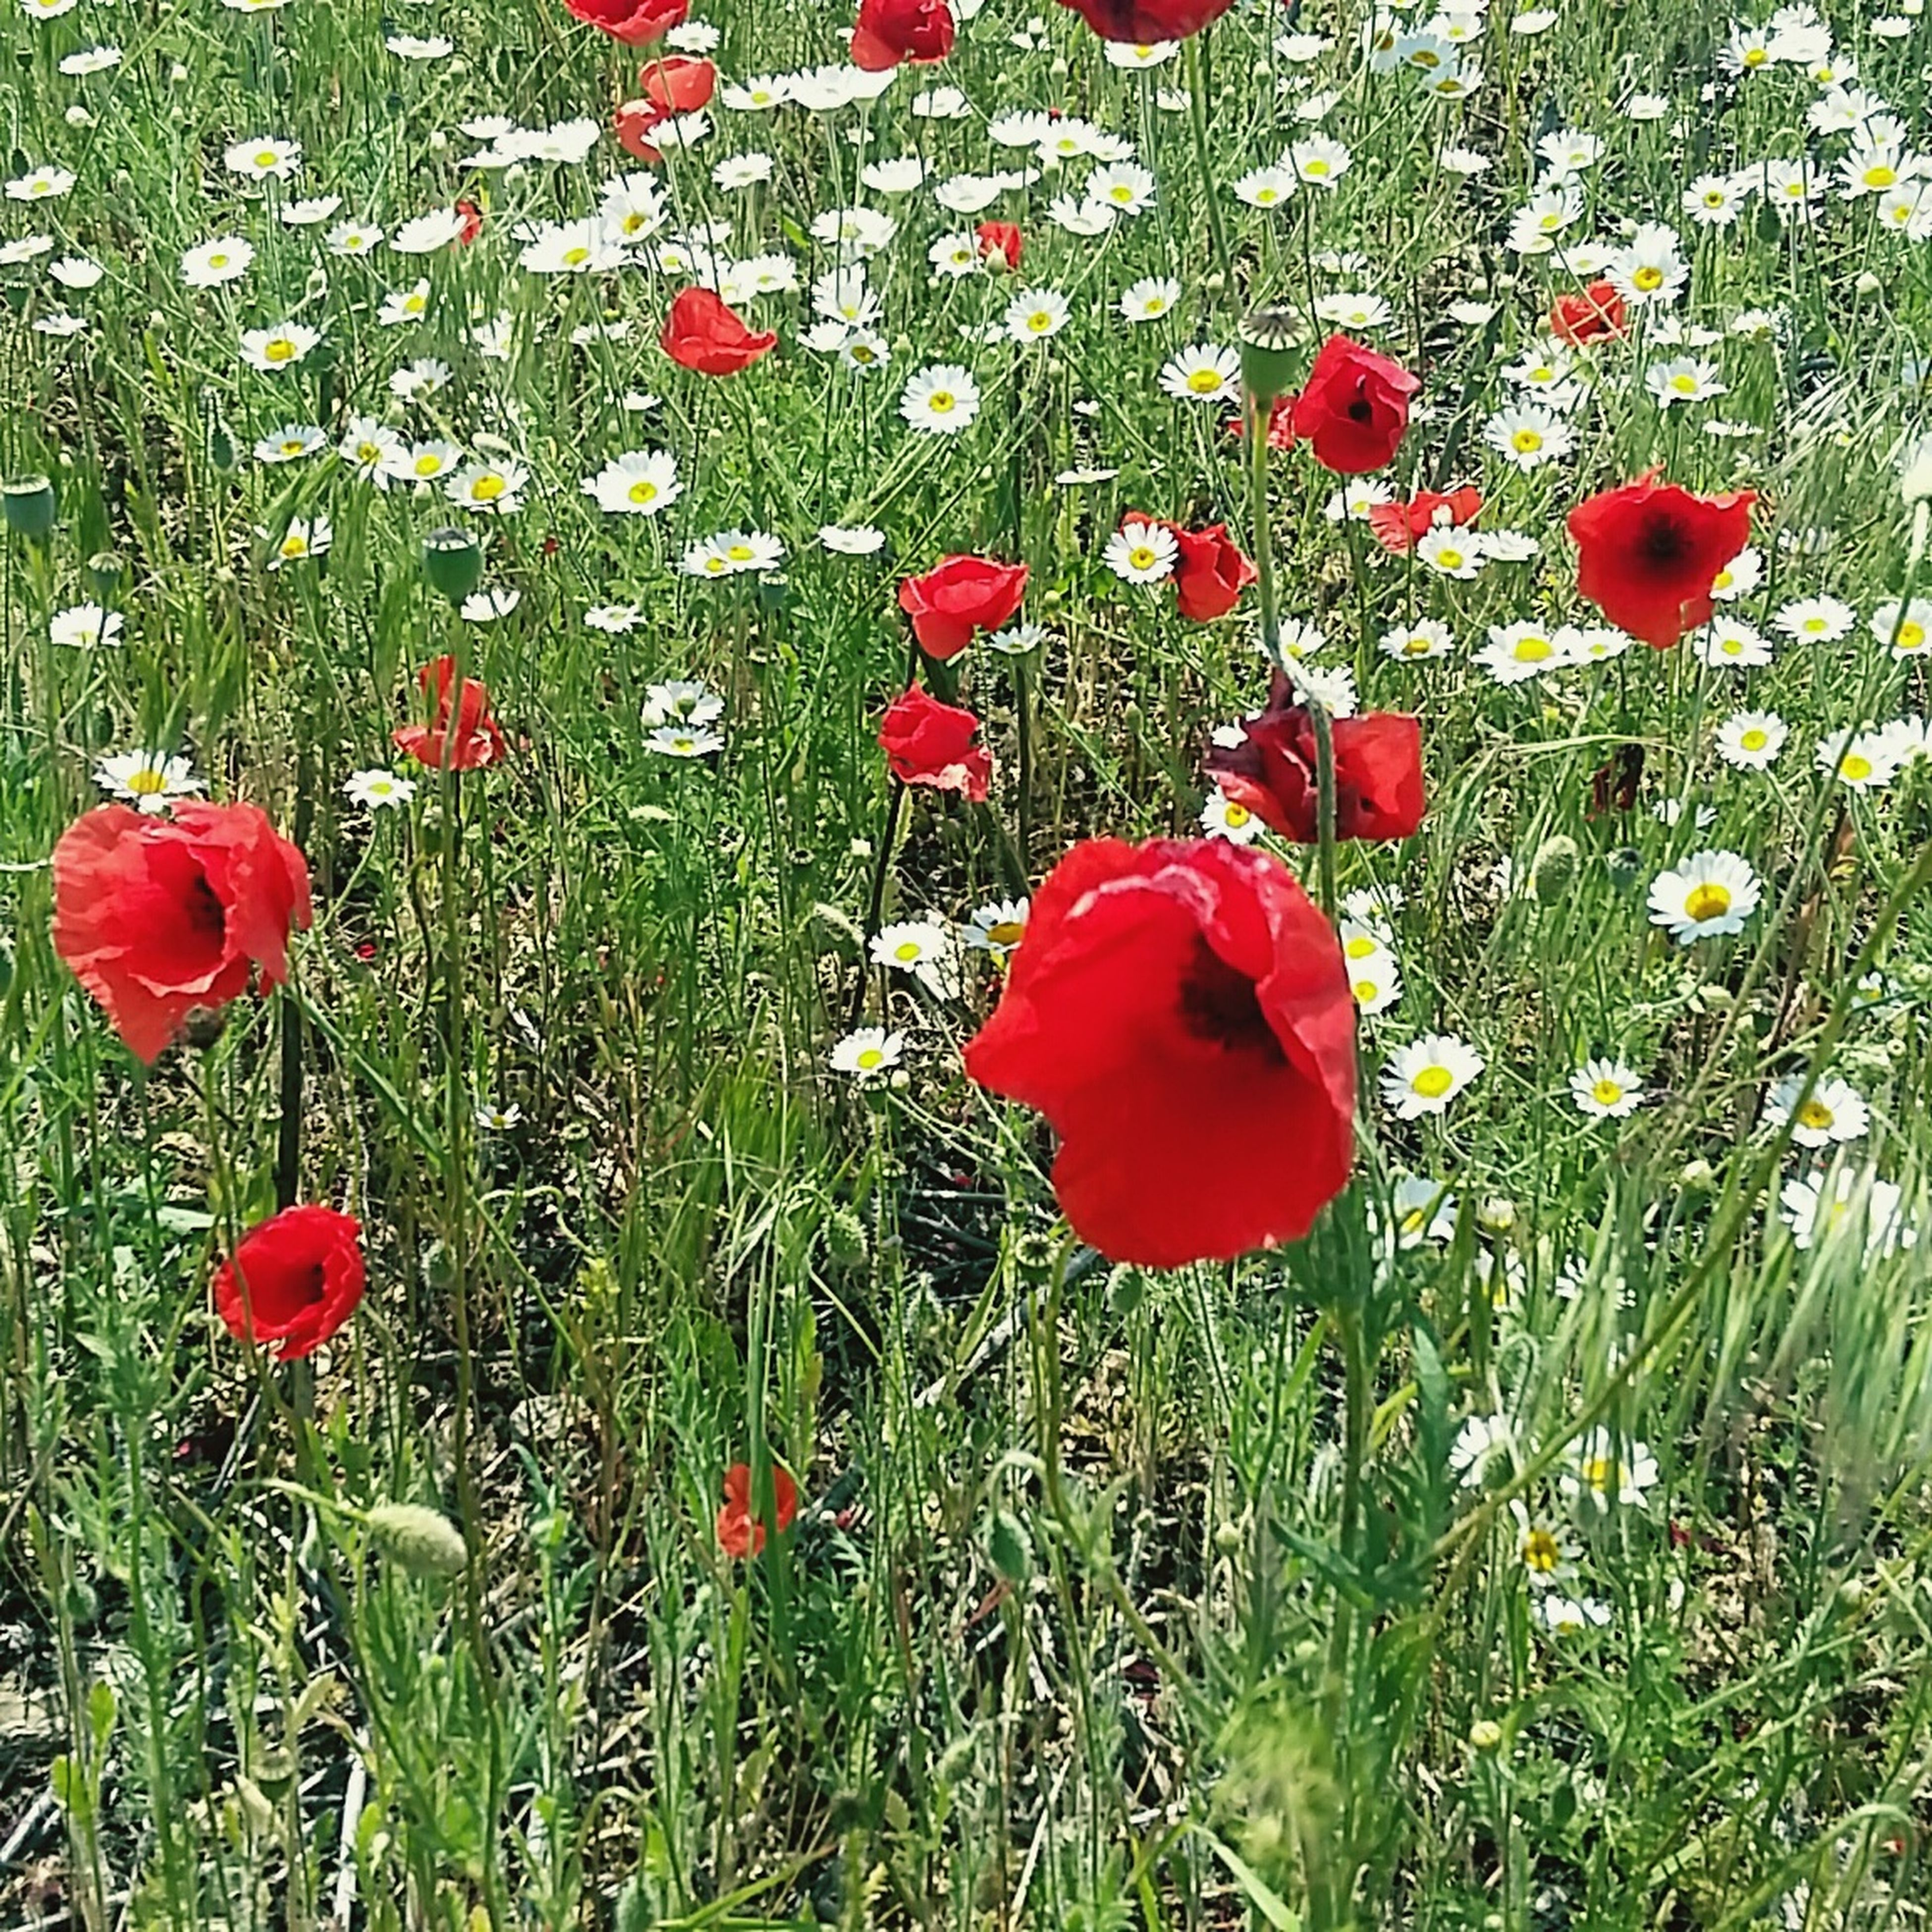 flower, freshness, red, growth, petal, fragility, beauty in nature, poppy, flower head, field, plant, nature, blooming, in bloom, grass, green color, high angle view, stem, day, no people